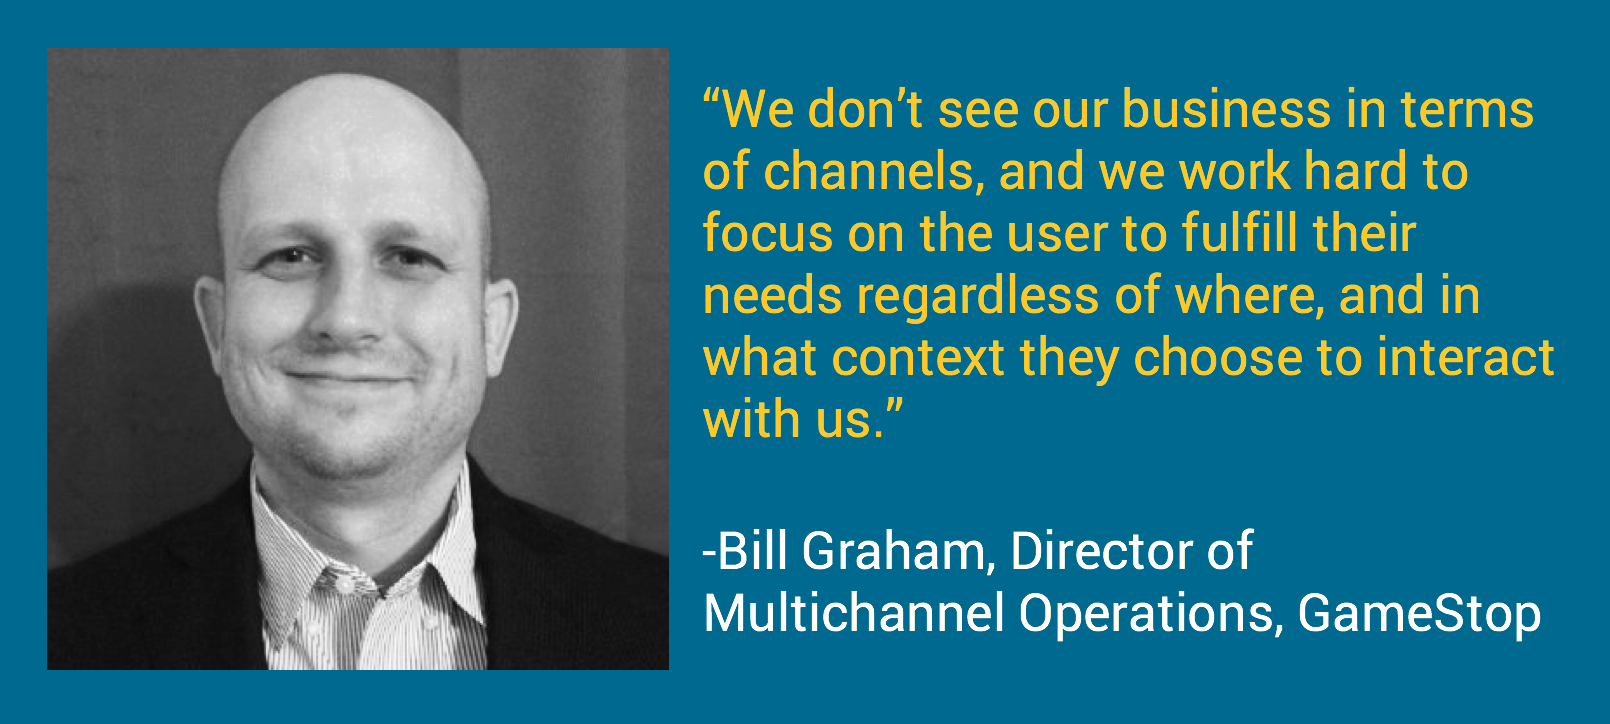 bill-graham-director-omnichannel-operations-gamestop-quote-urban-airship